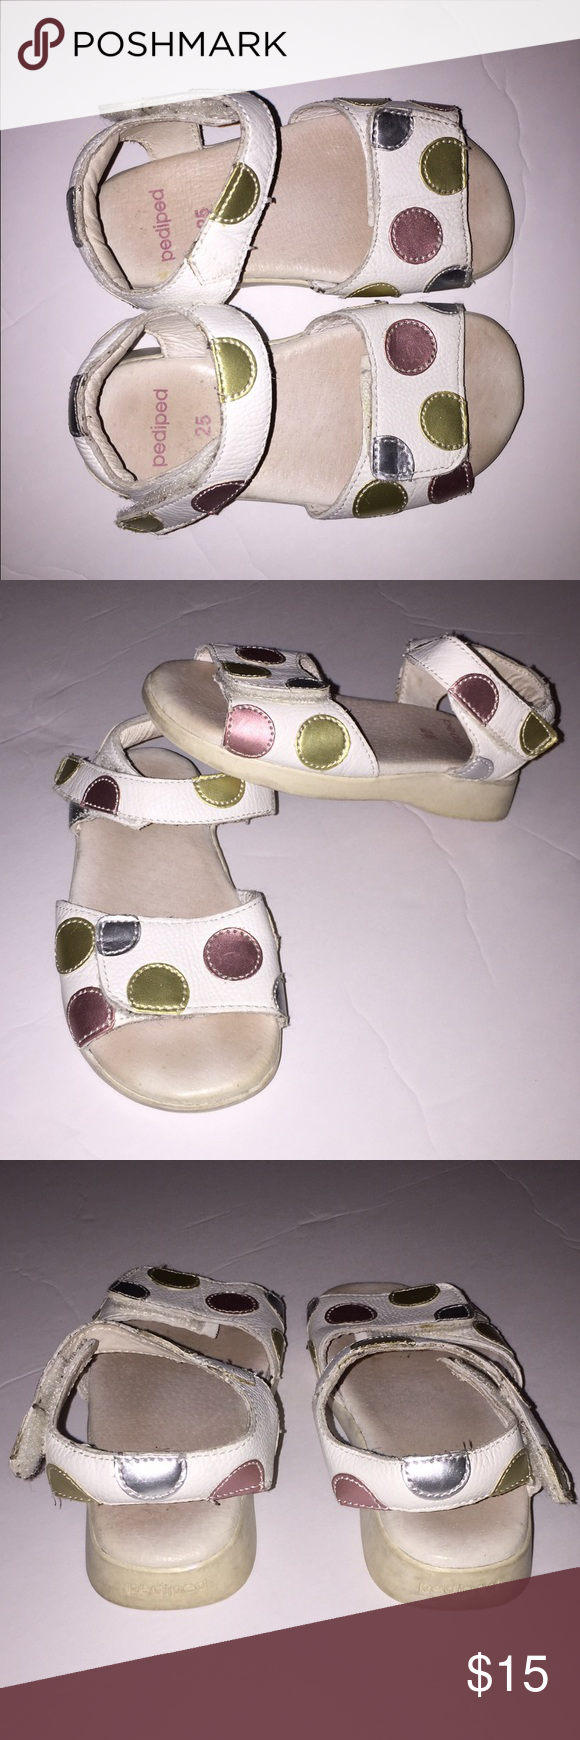 Pediped Flex Sandals size 25 size 8.5 Super Cute adorable pediped sandals size 25 Euro which is size 8.5 US. White open toe with a Velcro closure around ankle and toes. Tons of life left. The exterior white with polka dots in great condition. pediped Shoes Sandals & Flip Flops